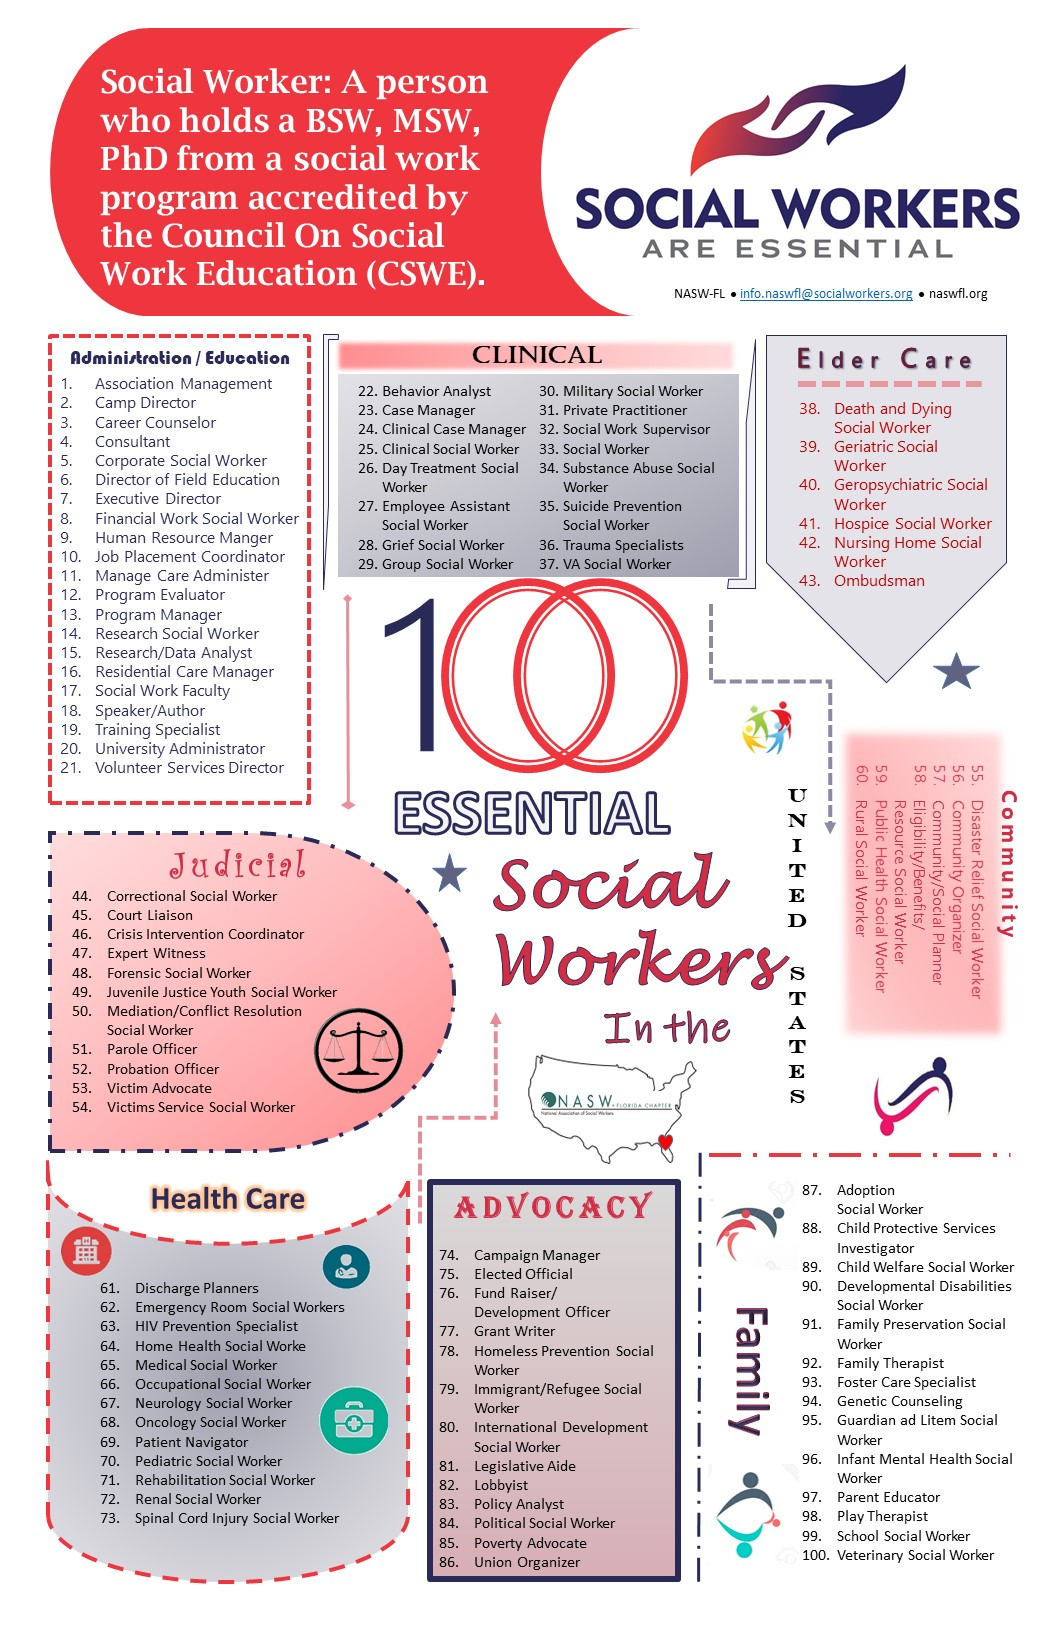 100 Essential Social Workers in the US